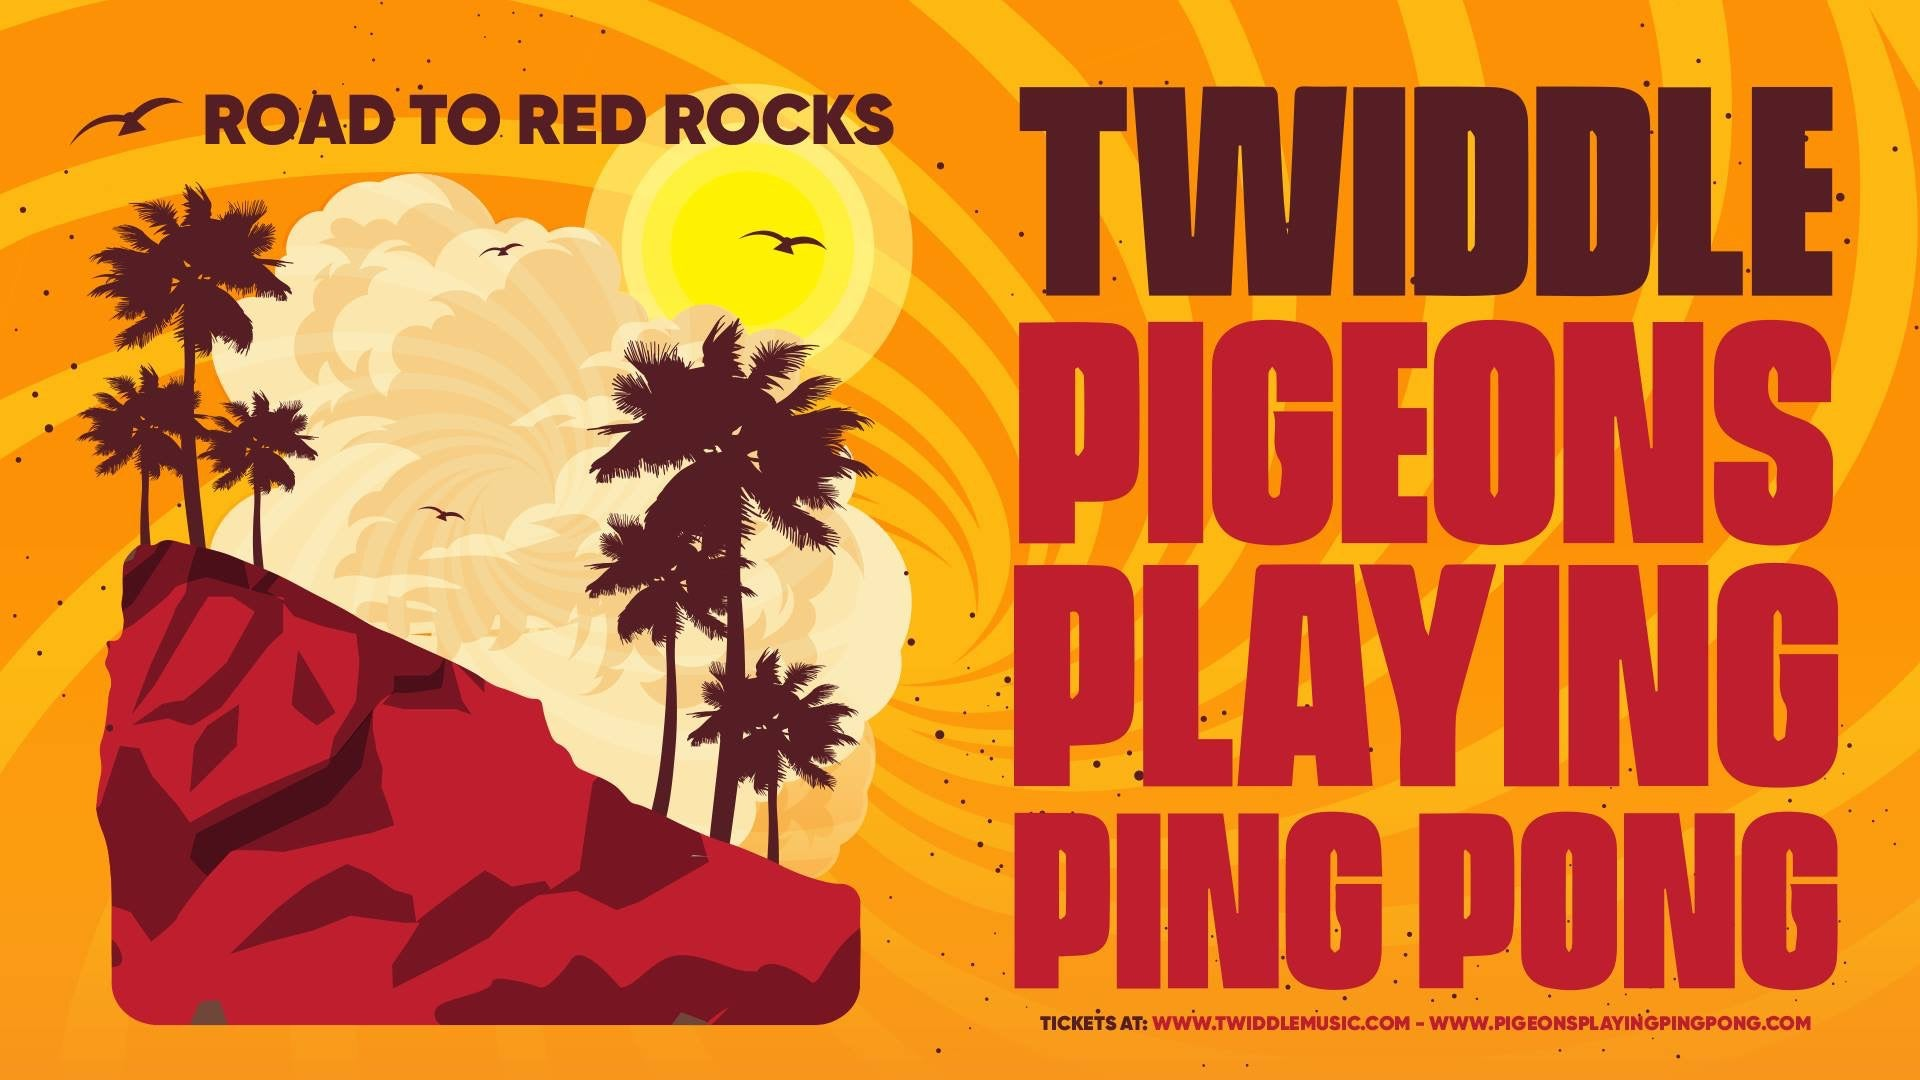 Pigeons Playing Ping Pong & Twiddle